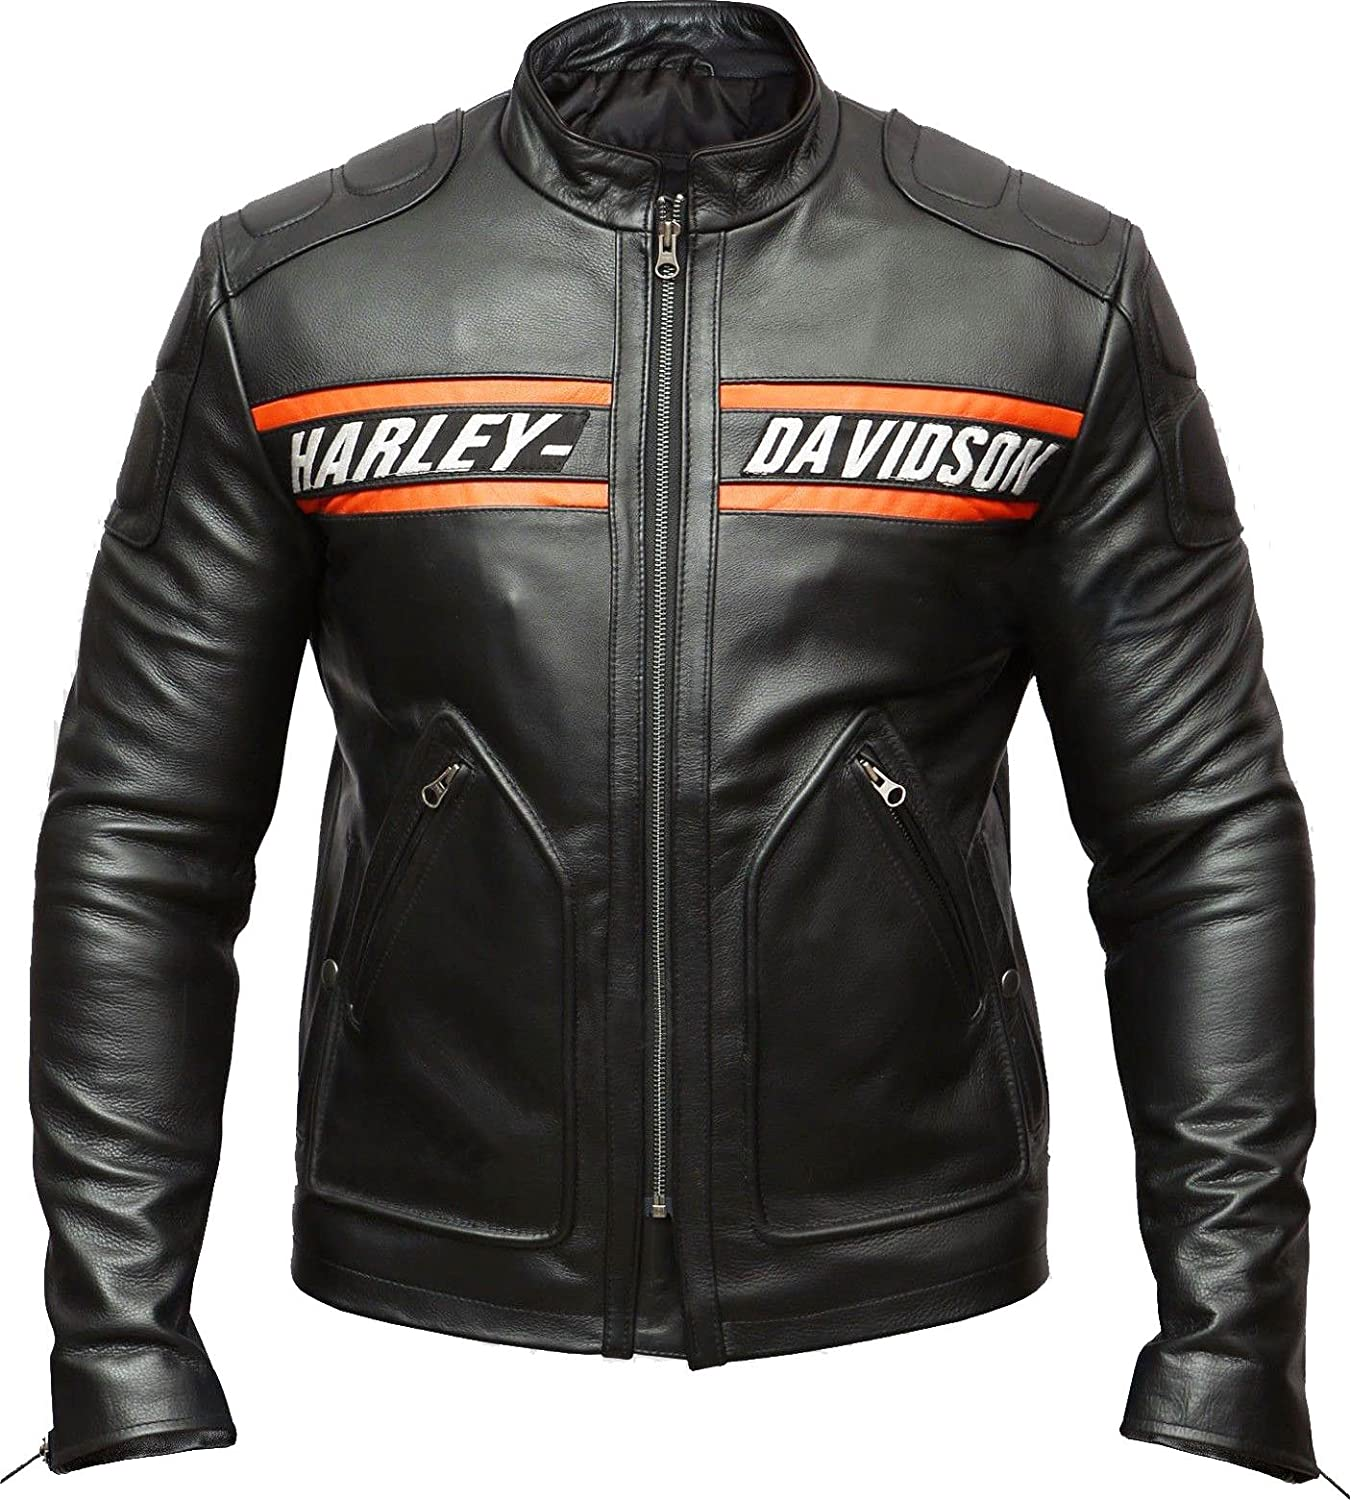 Harley Davidson Biker Genuine Leather Jacket Style Motorcycle Goldberg WWE